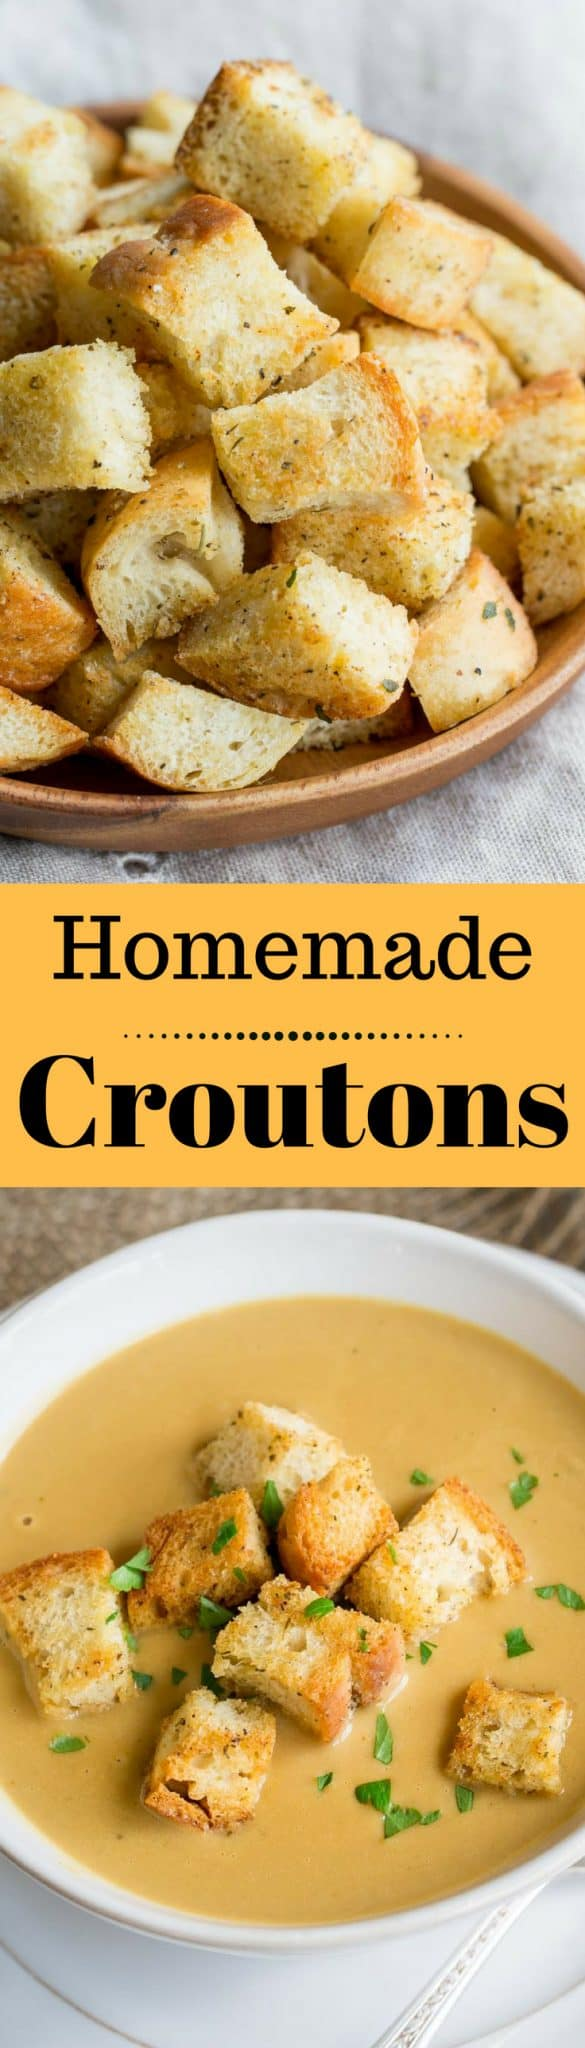 Homemade Croutons - Crispy, garlic and herb flavored Homemade Croutons ...